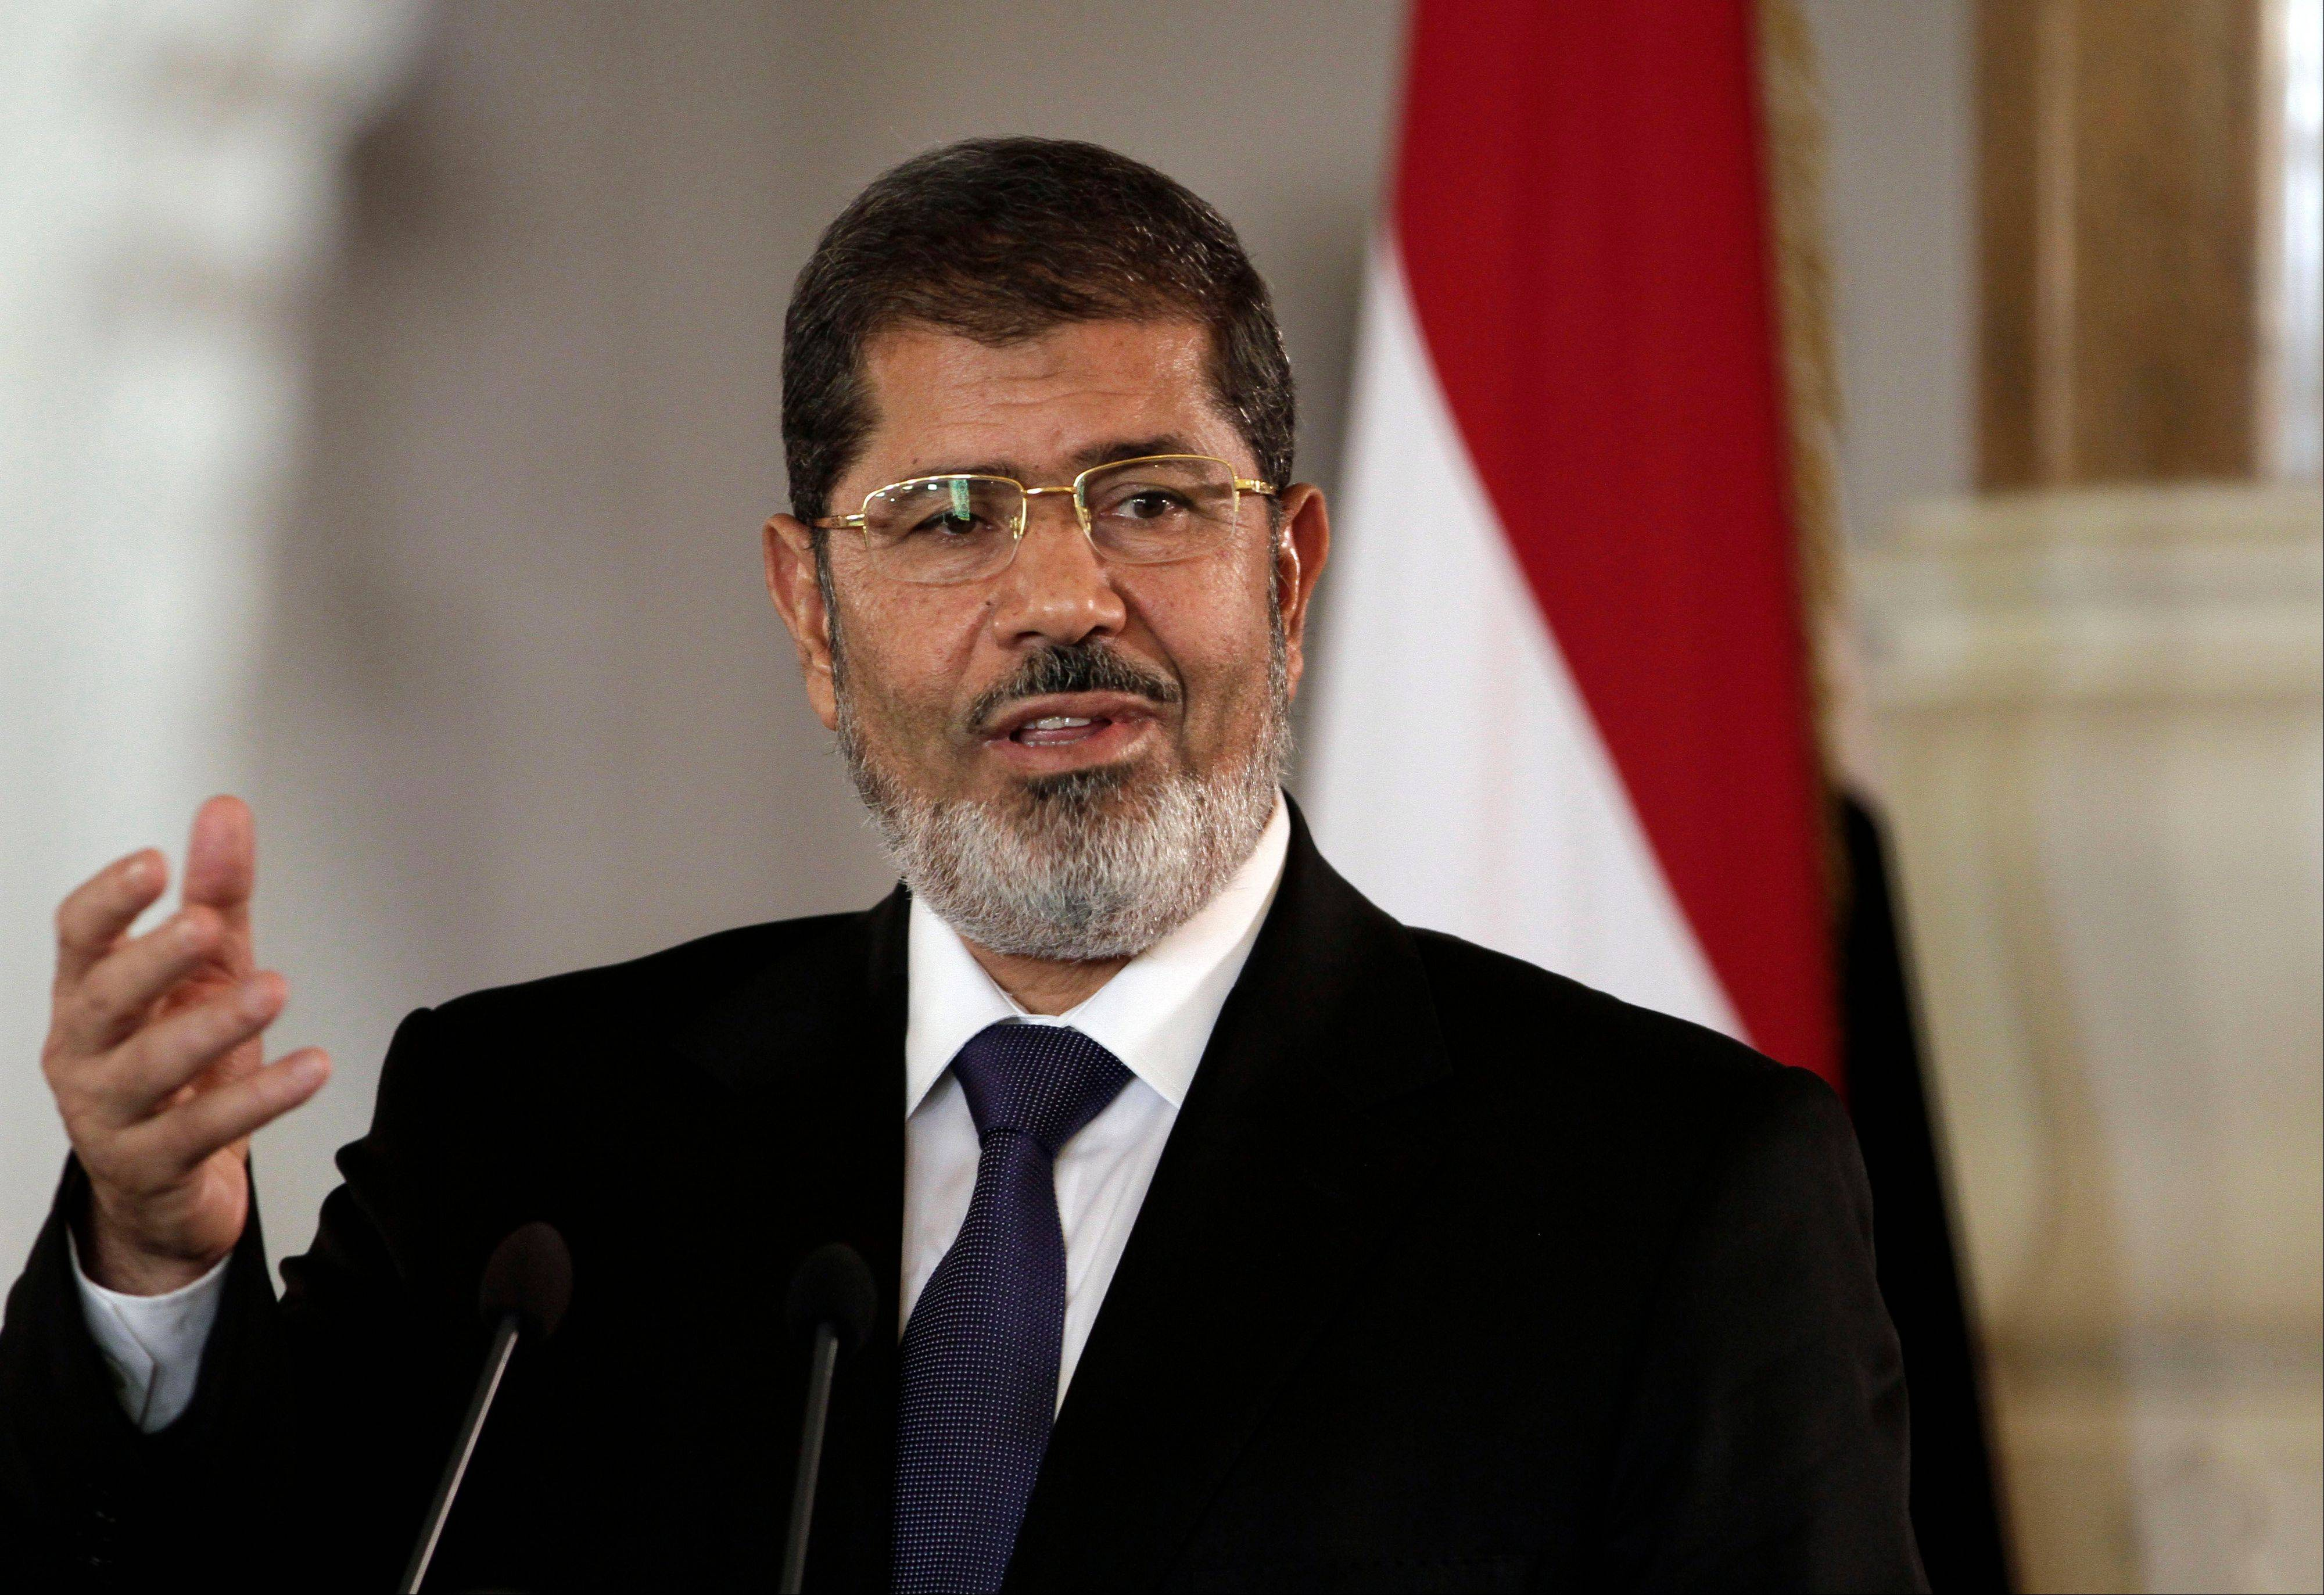 Egyptian President Mohammed Morsi speaks to reporters at the presidential palace in Cairo.